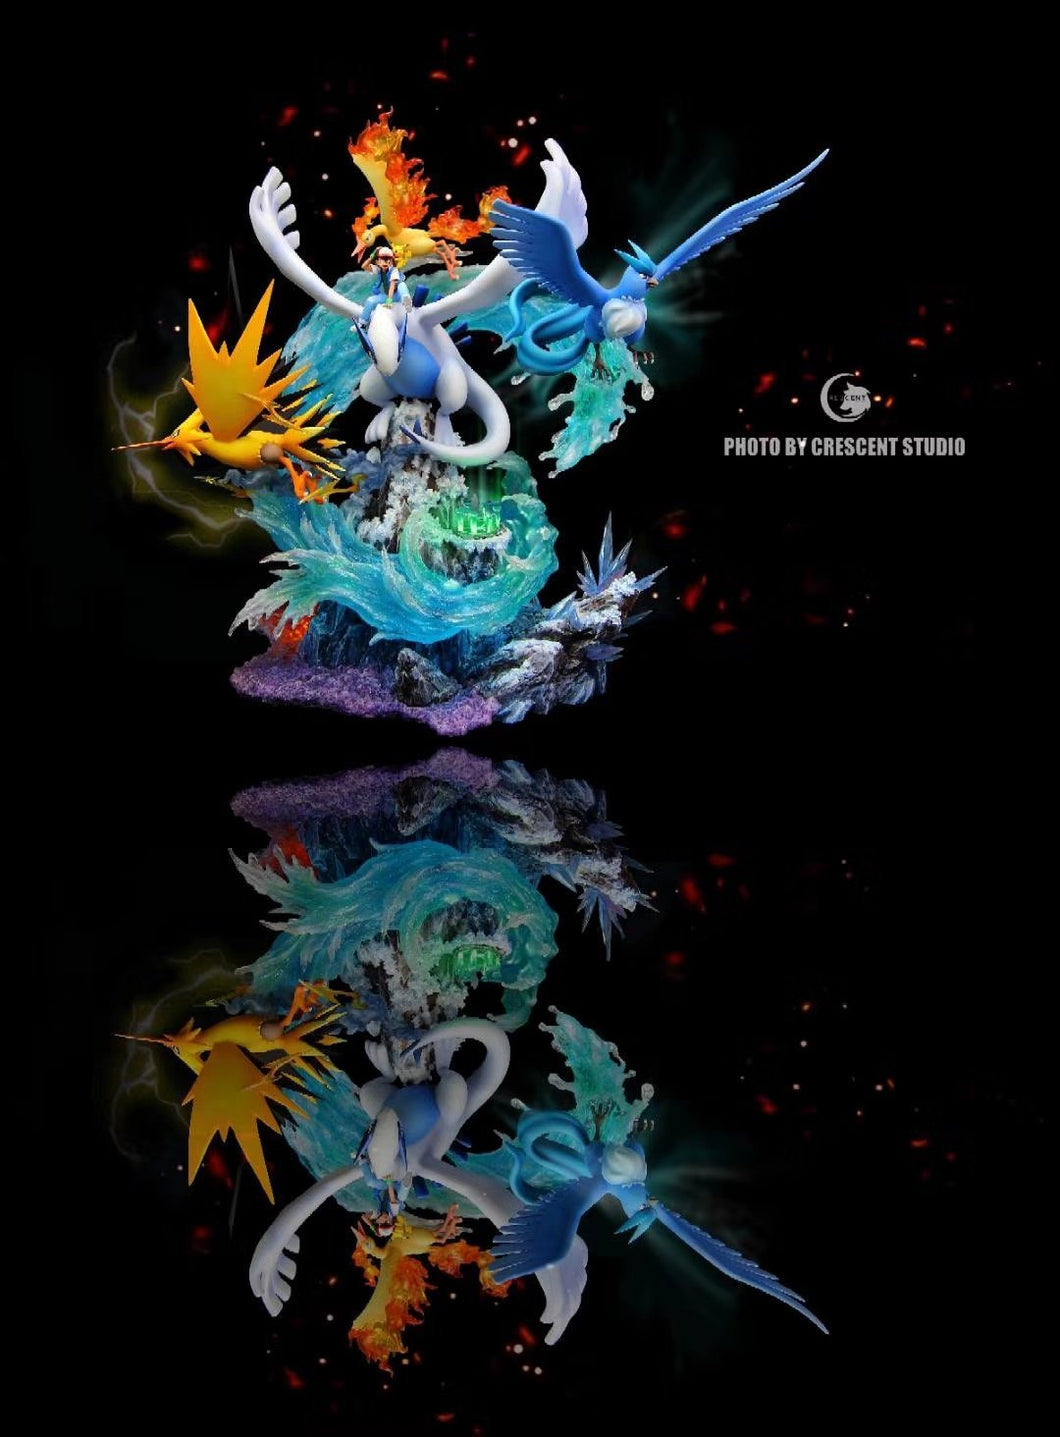 Sea & Lugia, Articuno, Zapdos, Moltres - Pokemon Resin Statue - Crescent Studios [In Stock] - FavorGK